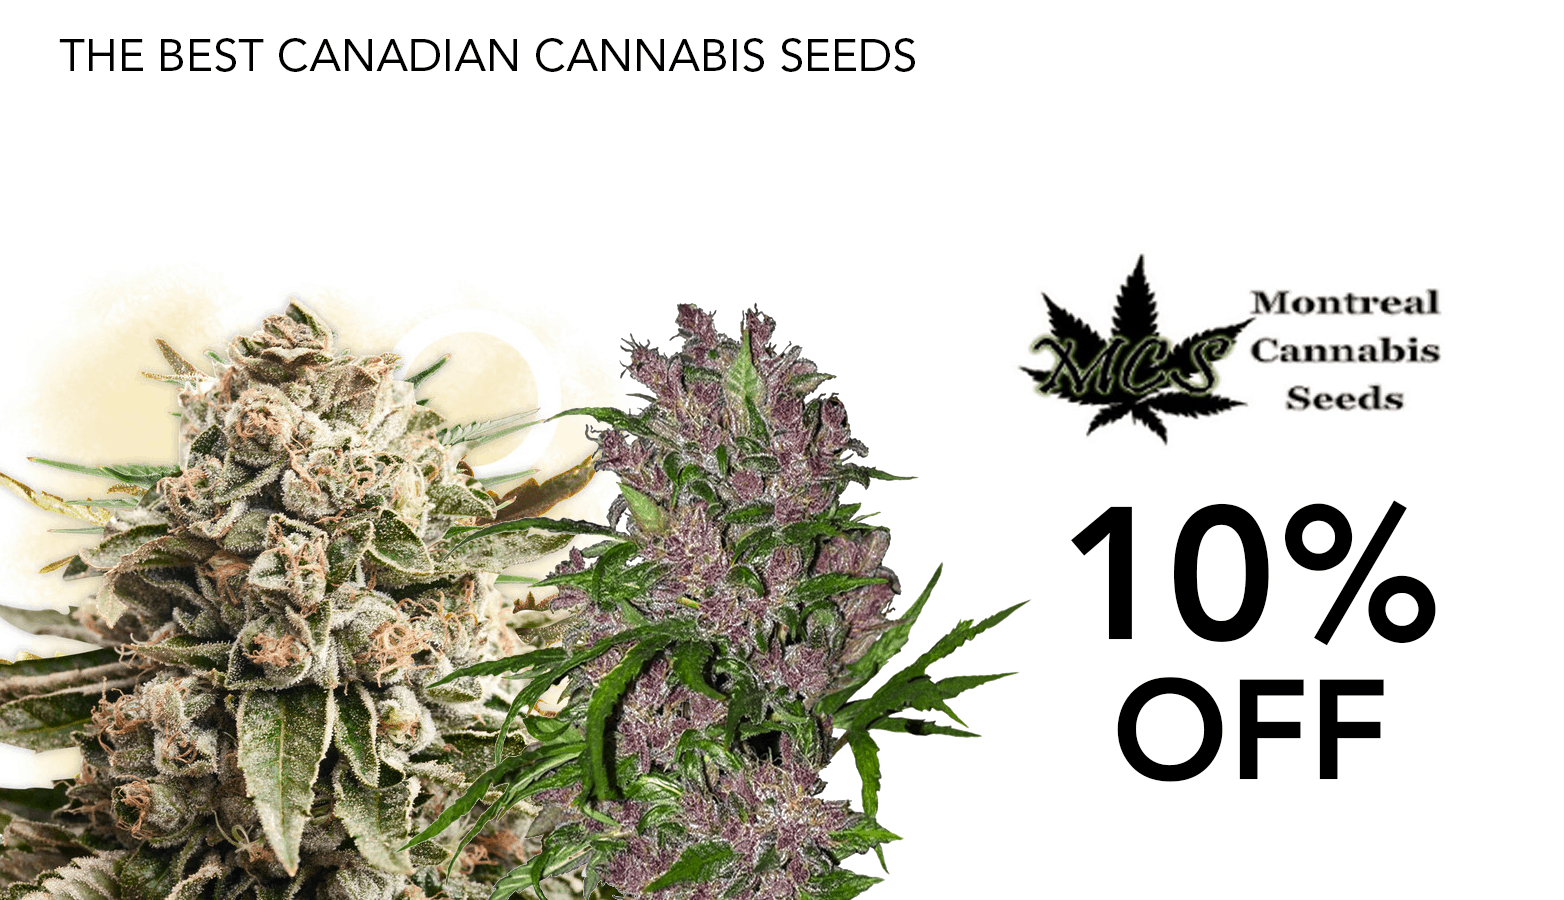 Montreal Cannabis Seeds Coupon Code Online Discount Save On Cannabis Redesign